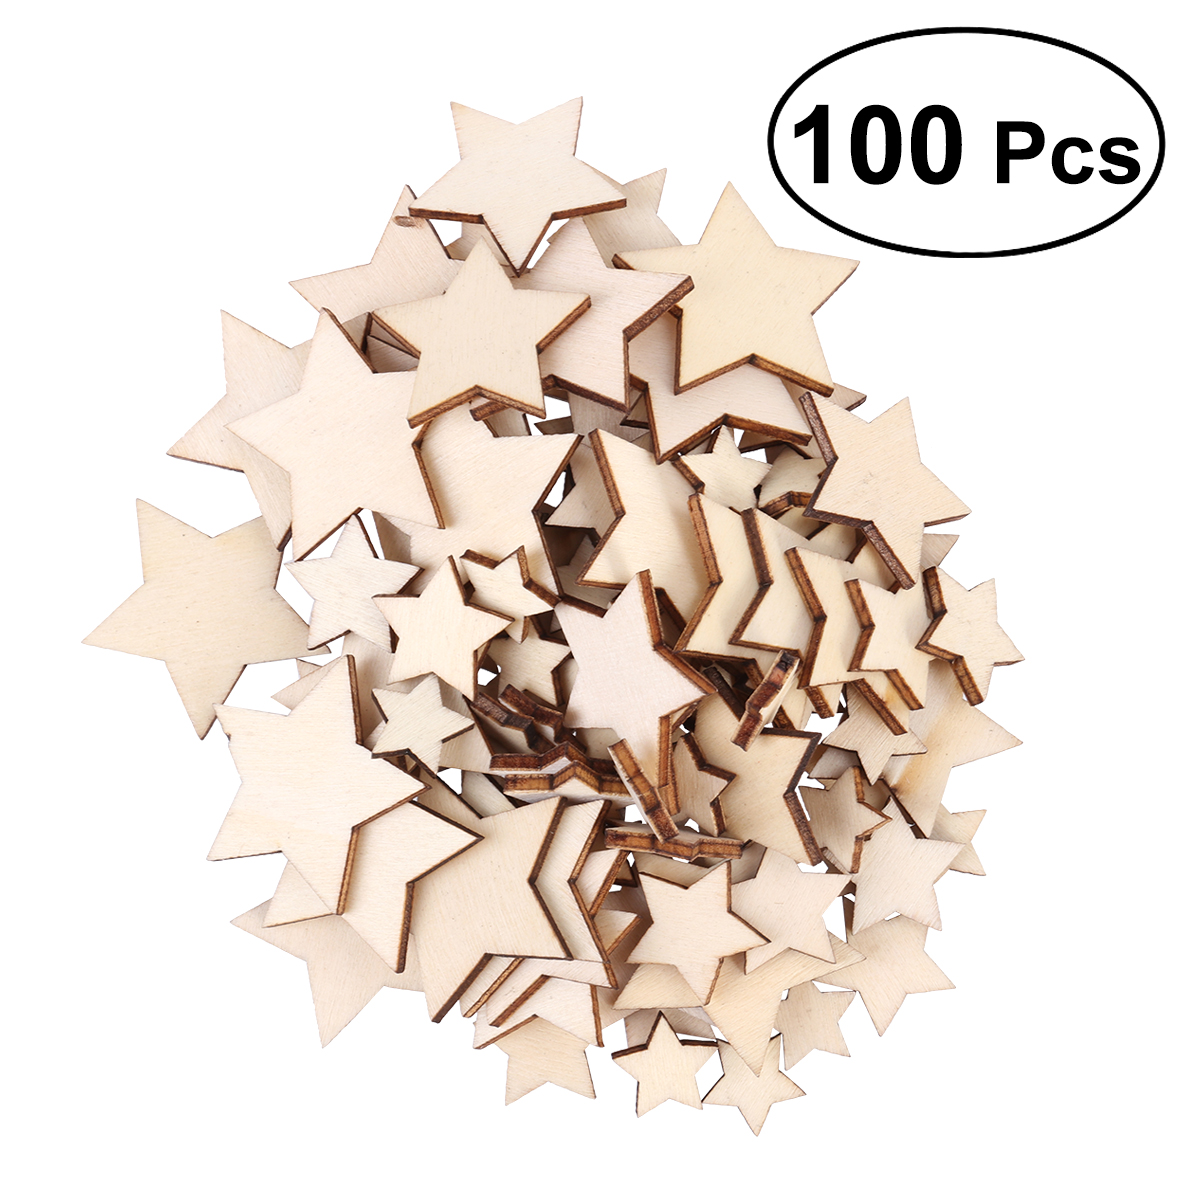 100PCS Wooden Stars Shape Cutout Discs Unfinished Wood Pieces Scrapbooking Arts Crafts DIY Decoration Birthday Wedding Muti Size In From